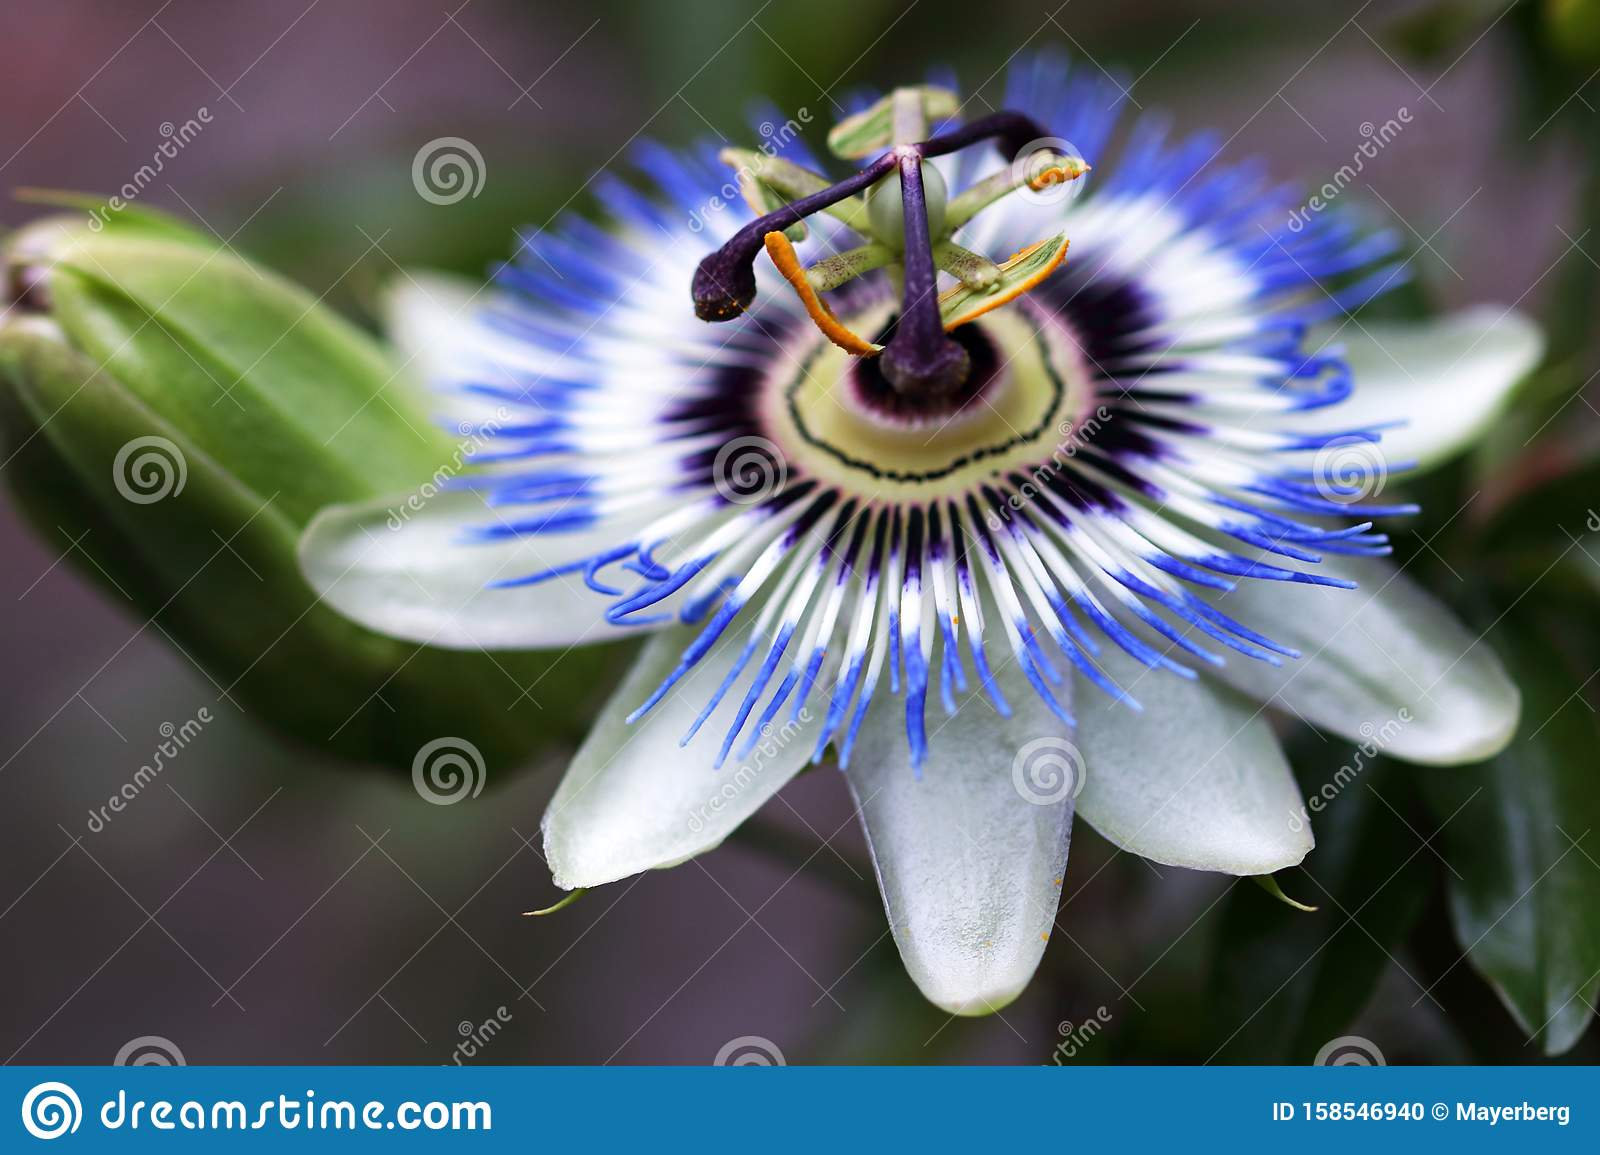 Passion Flower Or Passiflora Caerulea Is A Climbing Plant Stock